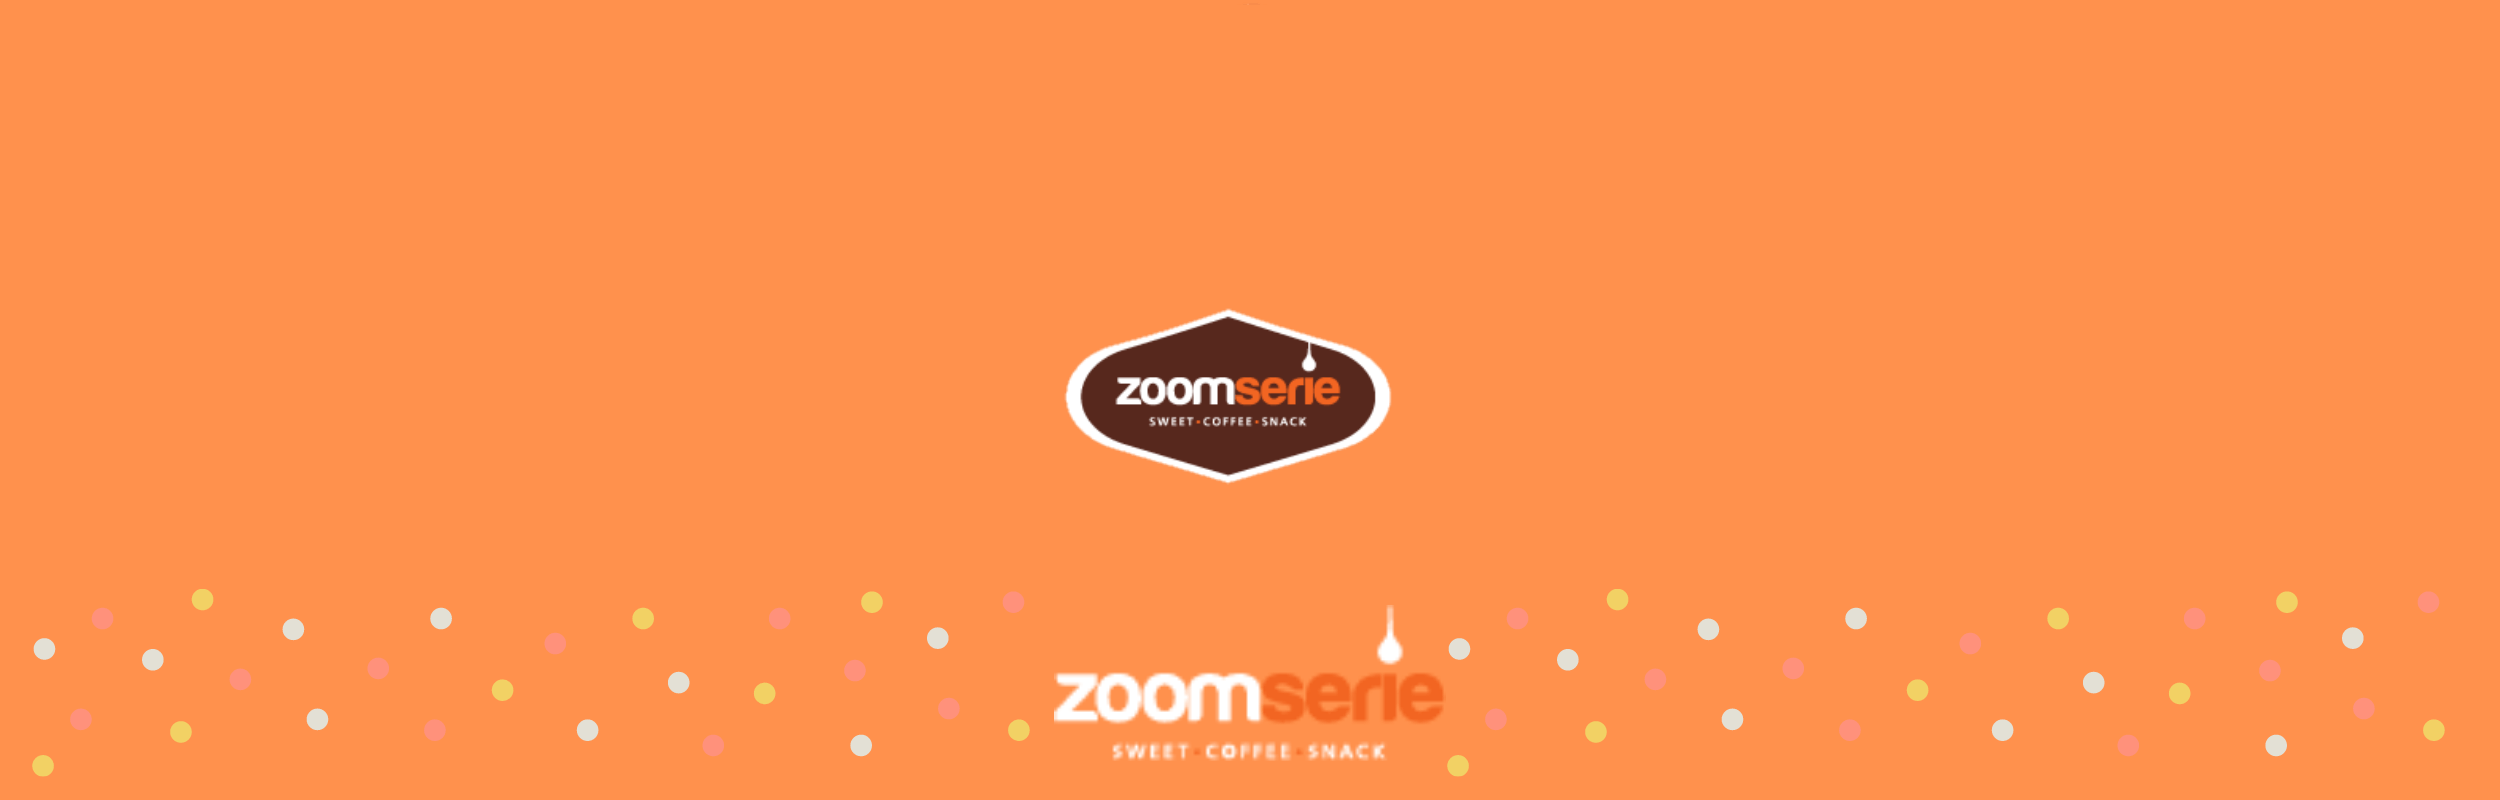 Zoomserie Delivery